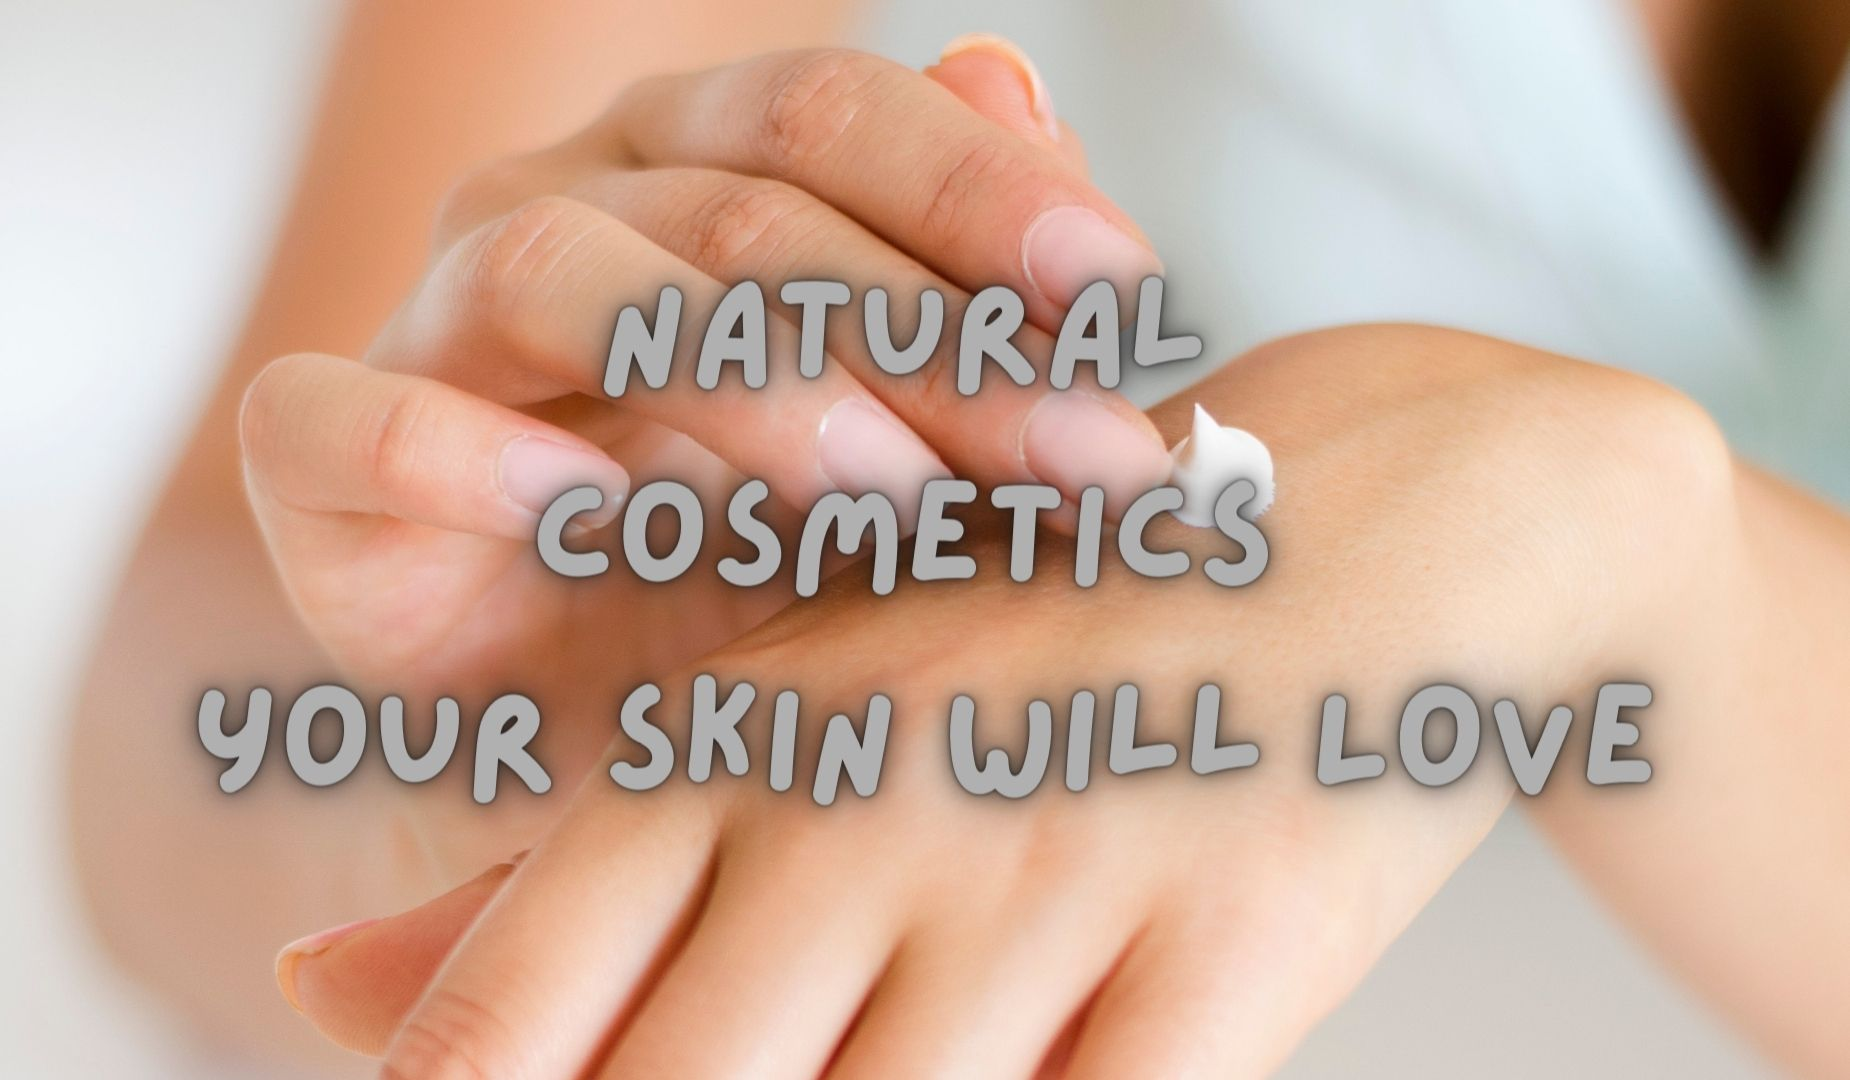 Natural Cosmetics Your Skin will Love